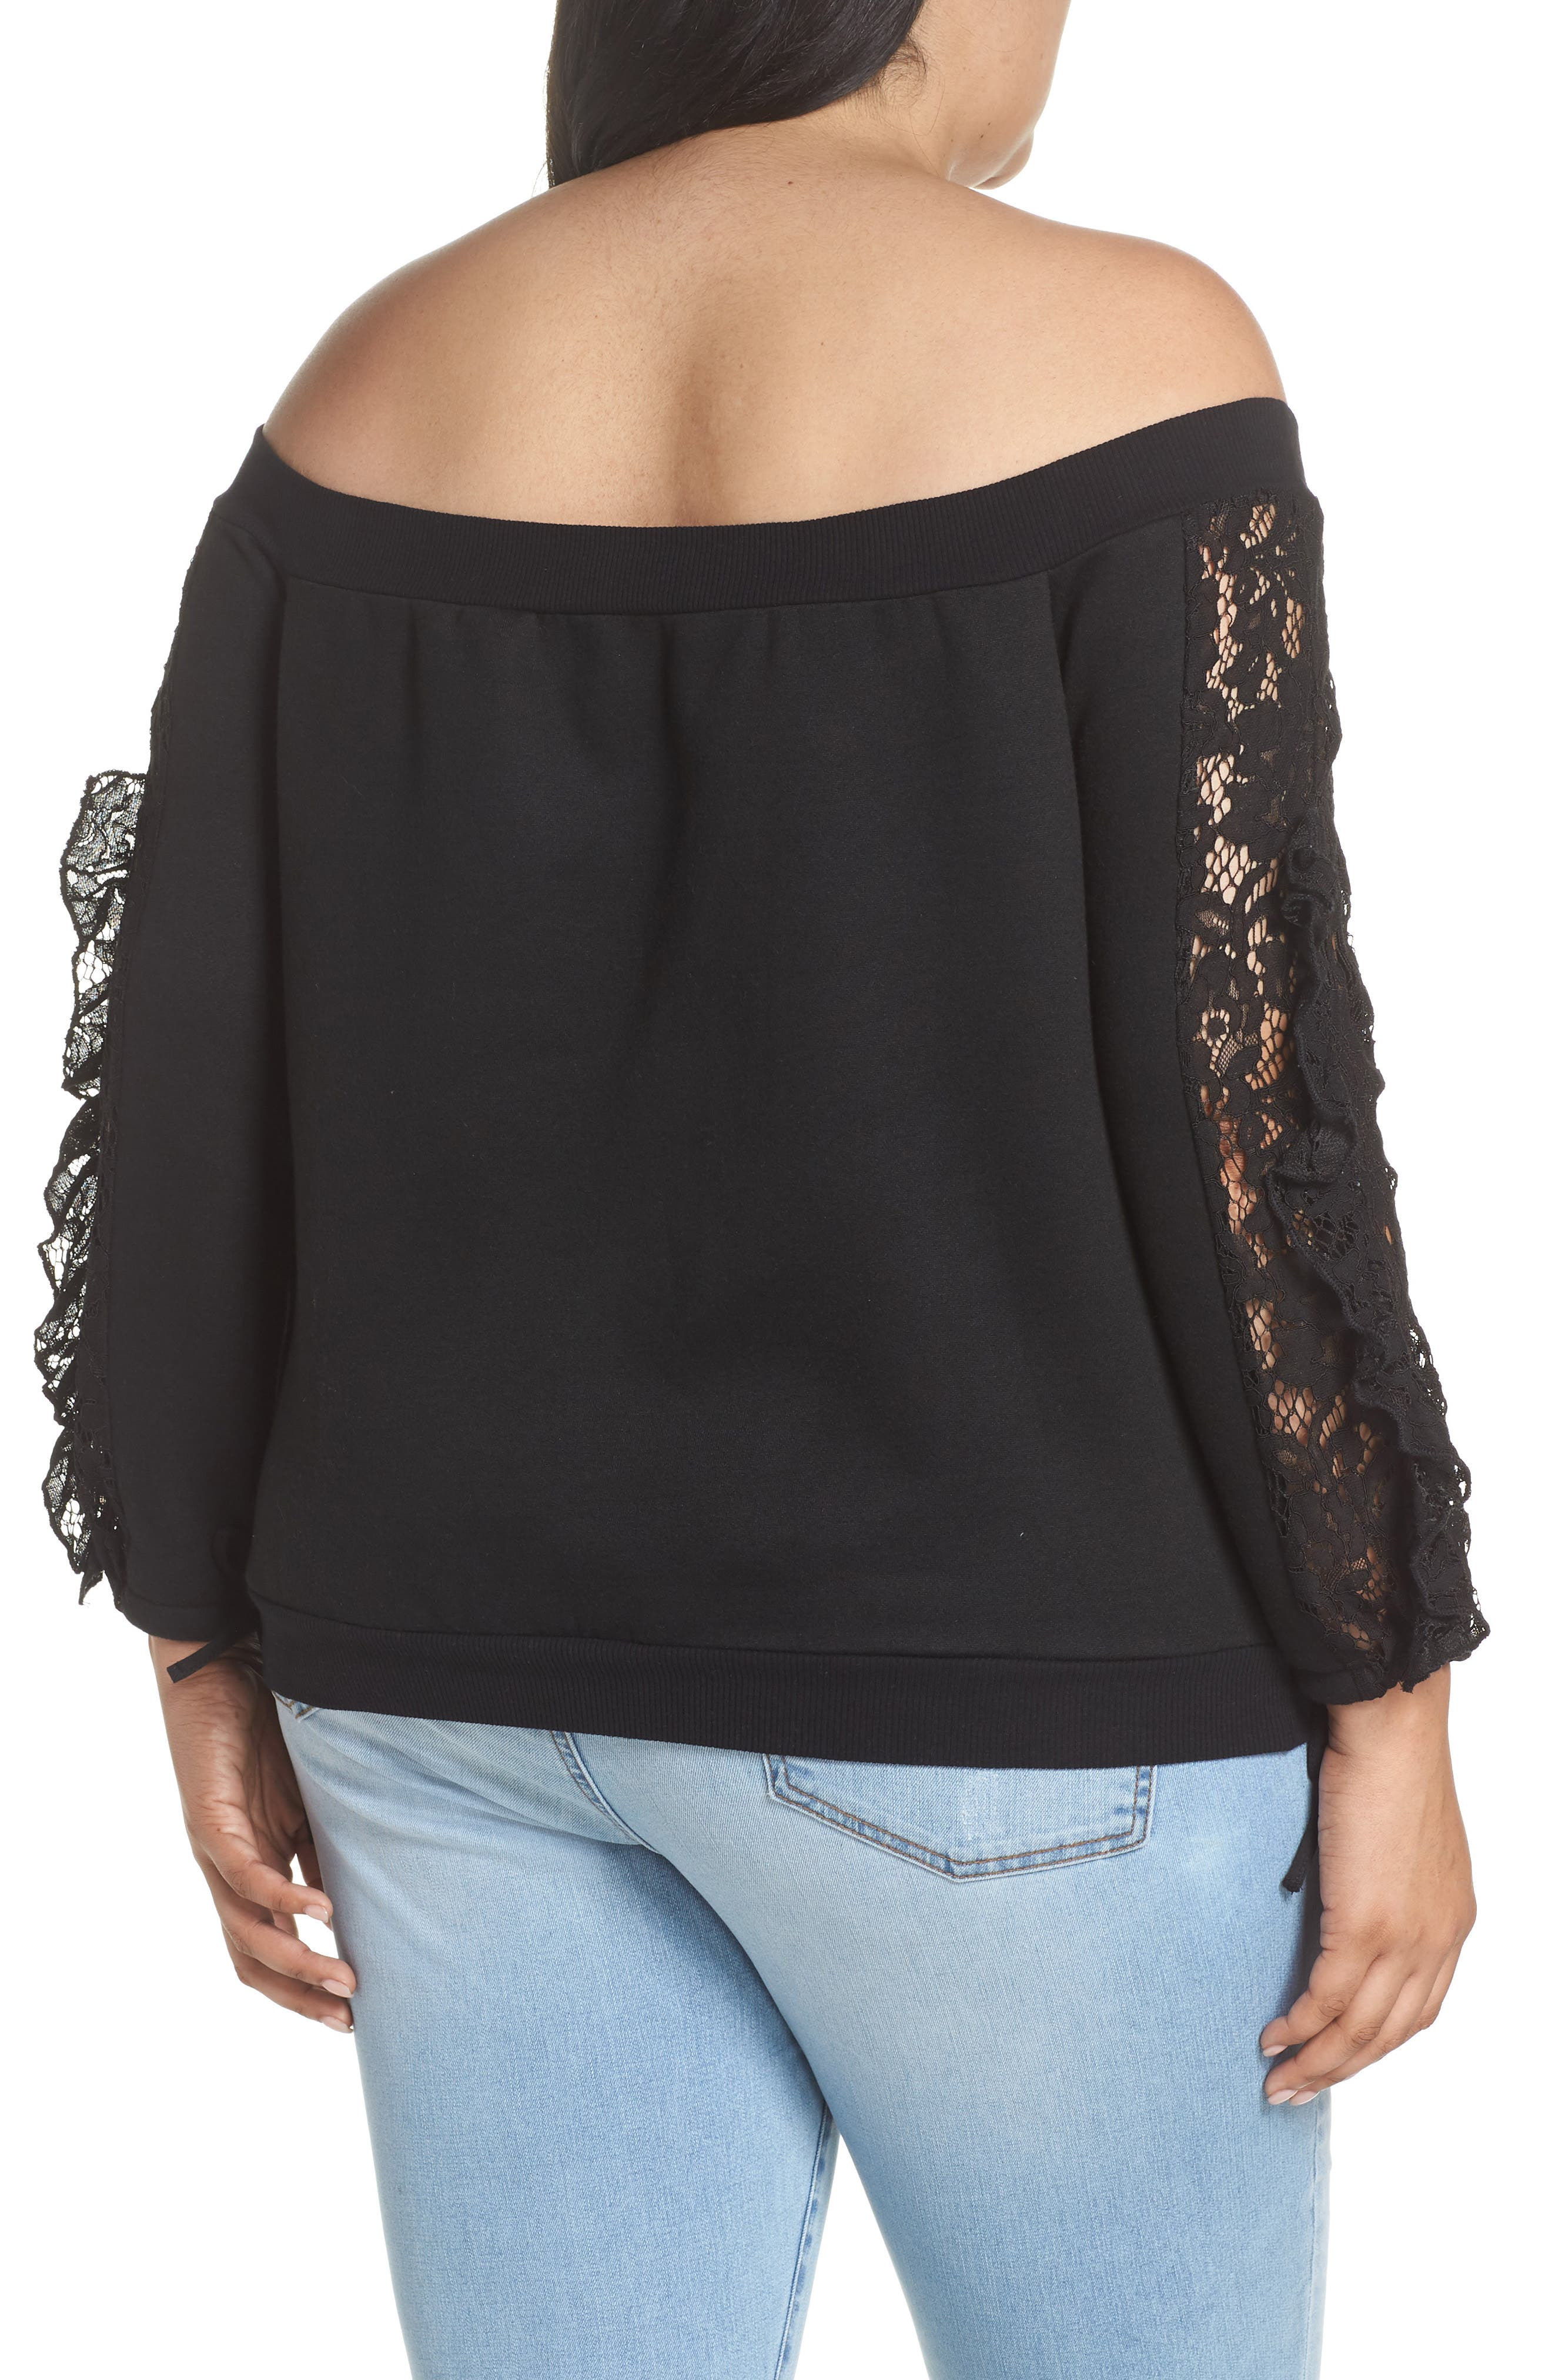 Lace Ruffle Sleeve Off the Shoulder Sweatshirt,                             Alternate thumbnail 2, color,                             Black